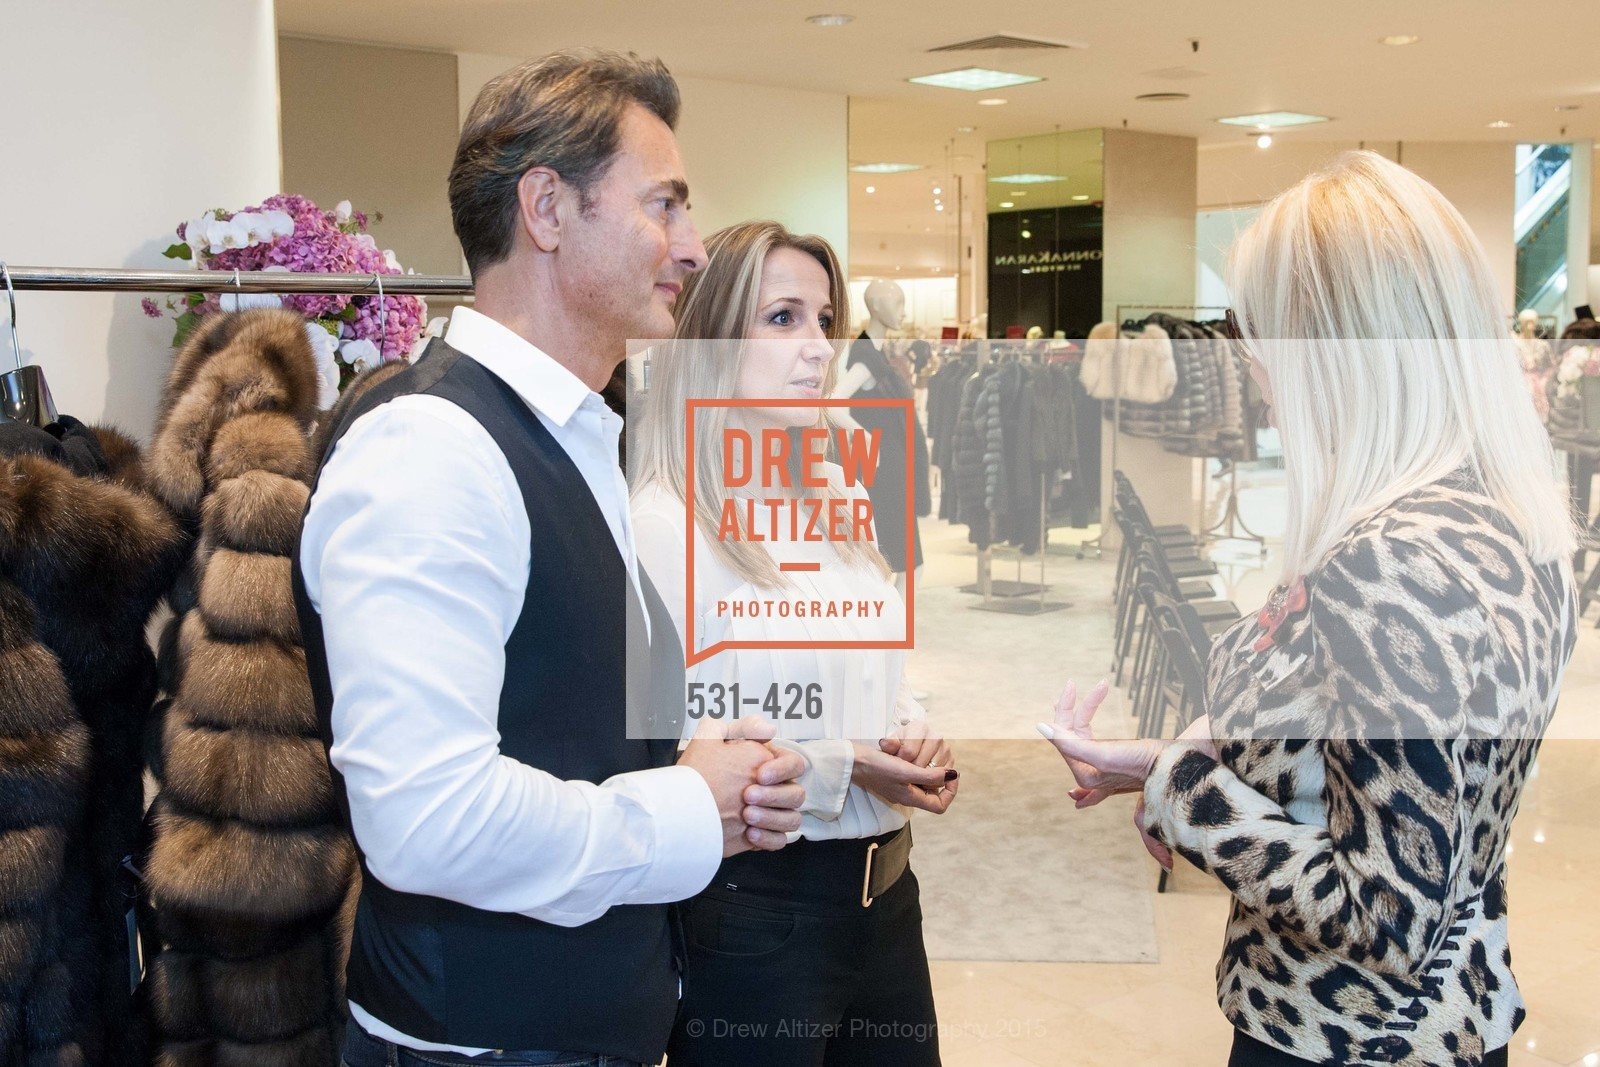 Brunello Rindi, Ilaria Fabbri, Rindi at Saks Fur Salon, Saks Fifth Avenue, Fur Salon, October 29th, 2015,Drew Altizer, Drew Altizer Photography, full-service event agency, private events, San Francisco photographer, photographer California